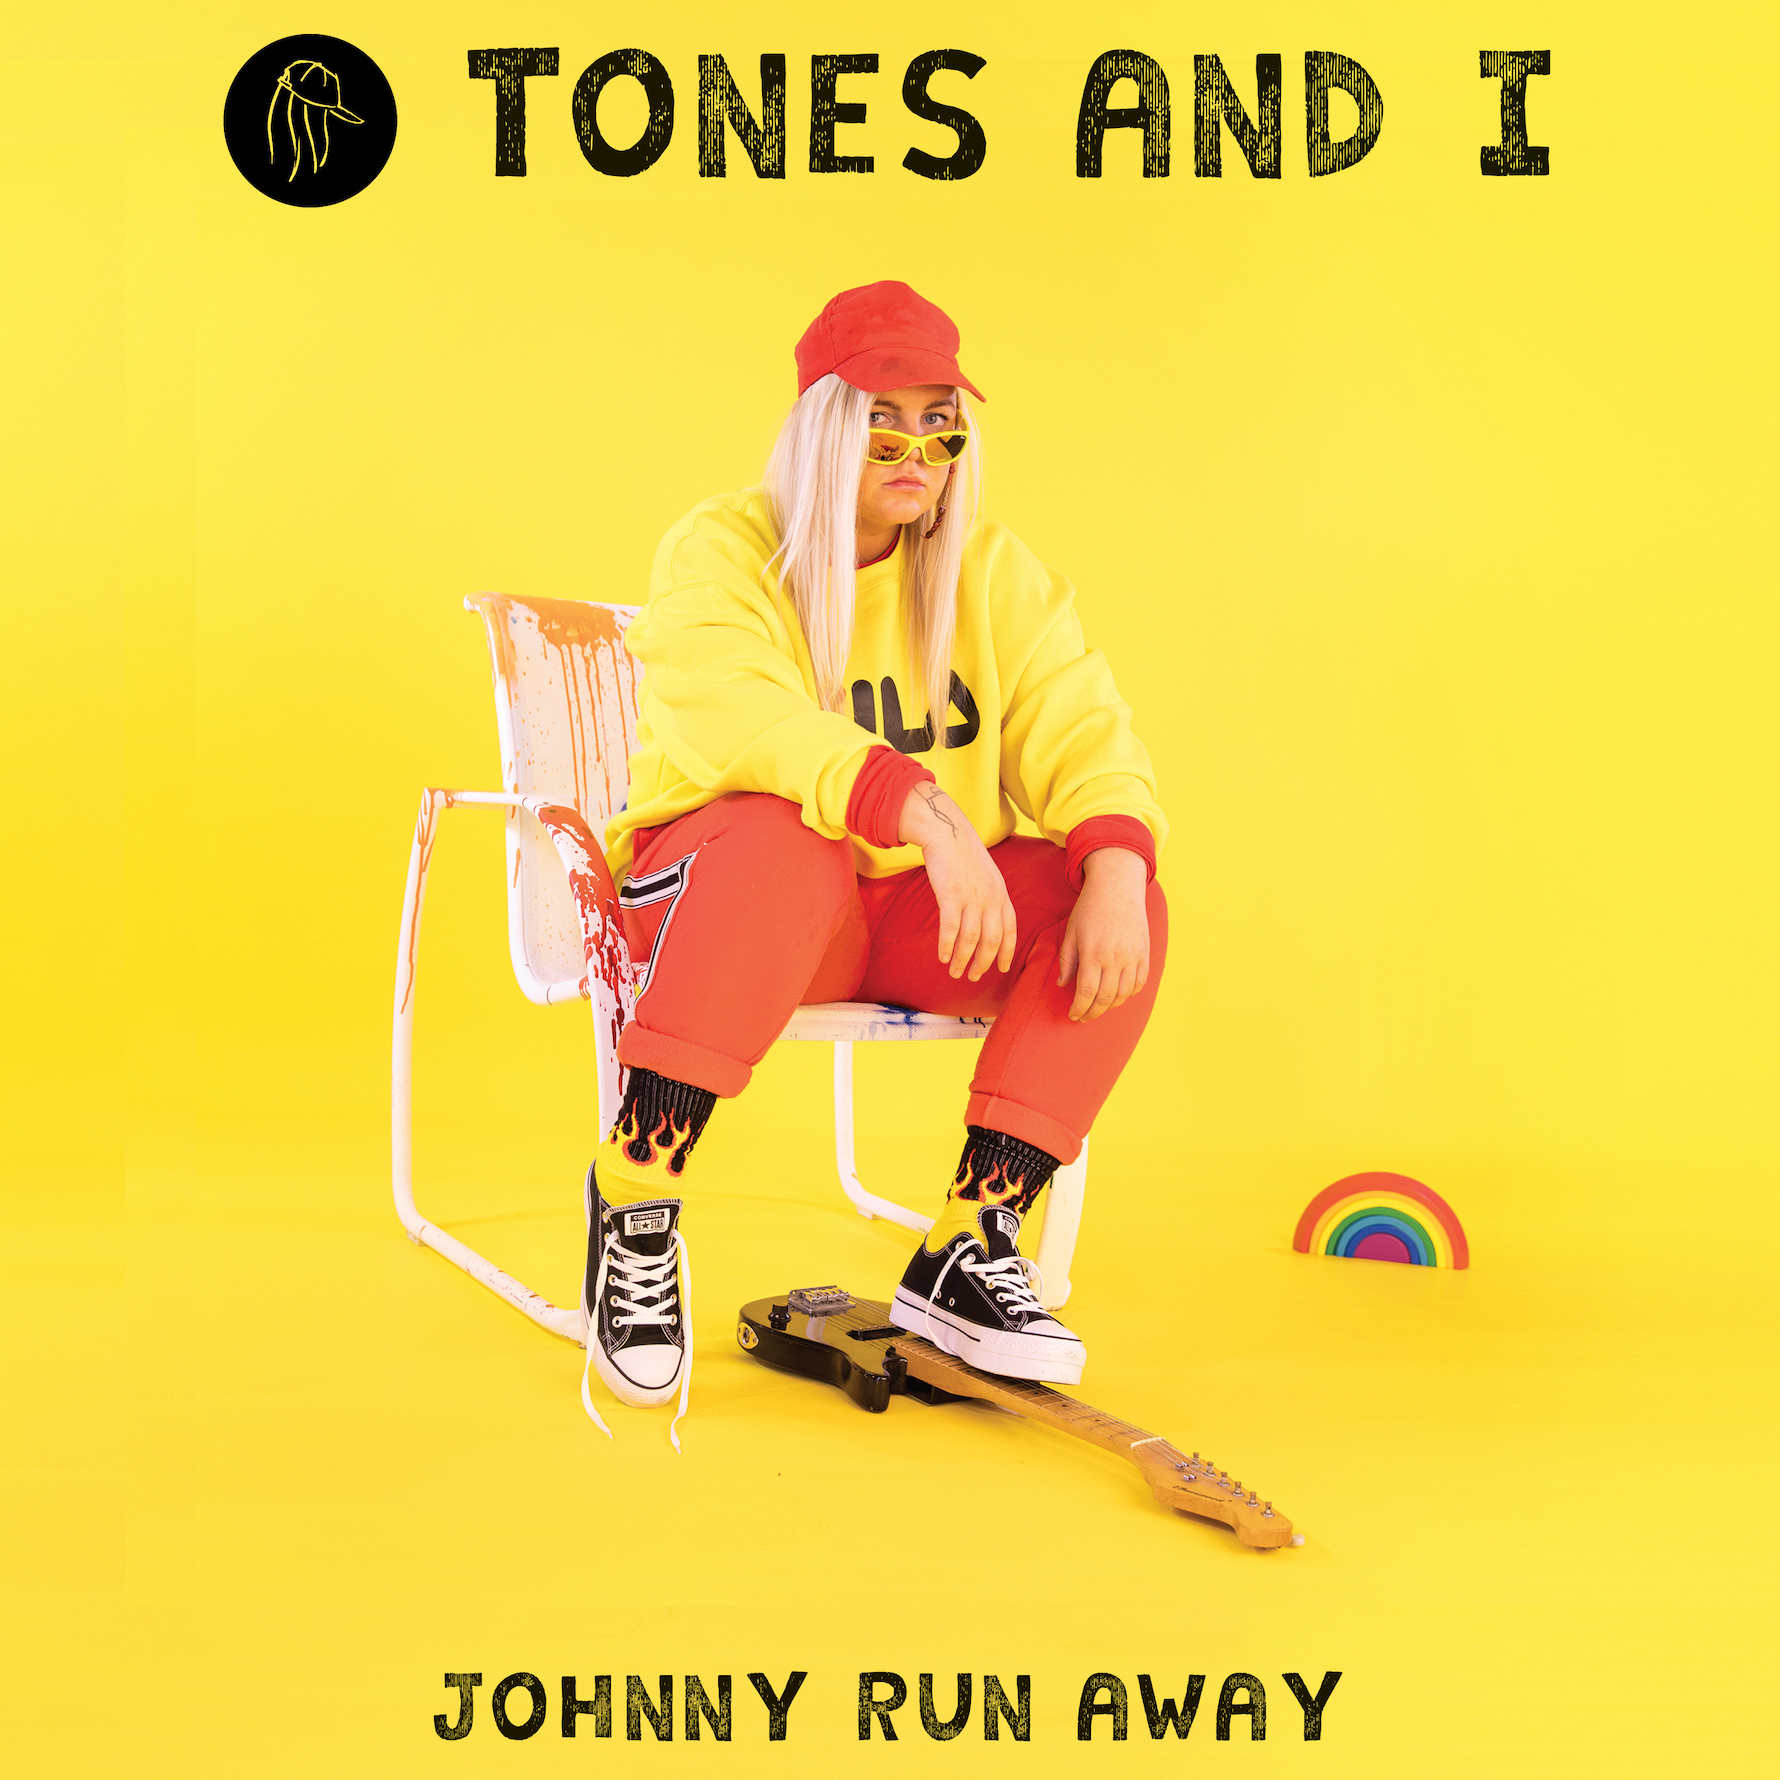 Artwork_Johnny Run Away_Tones And I copy